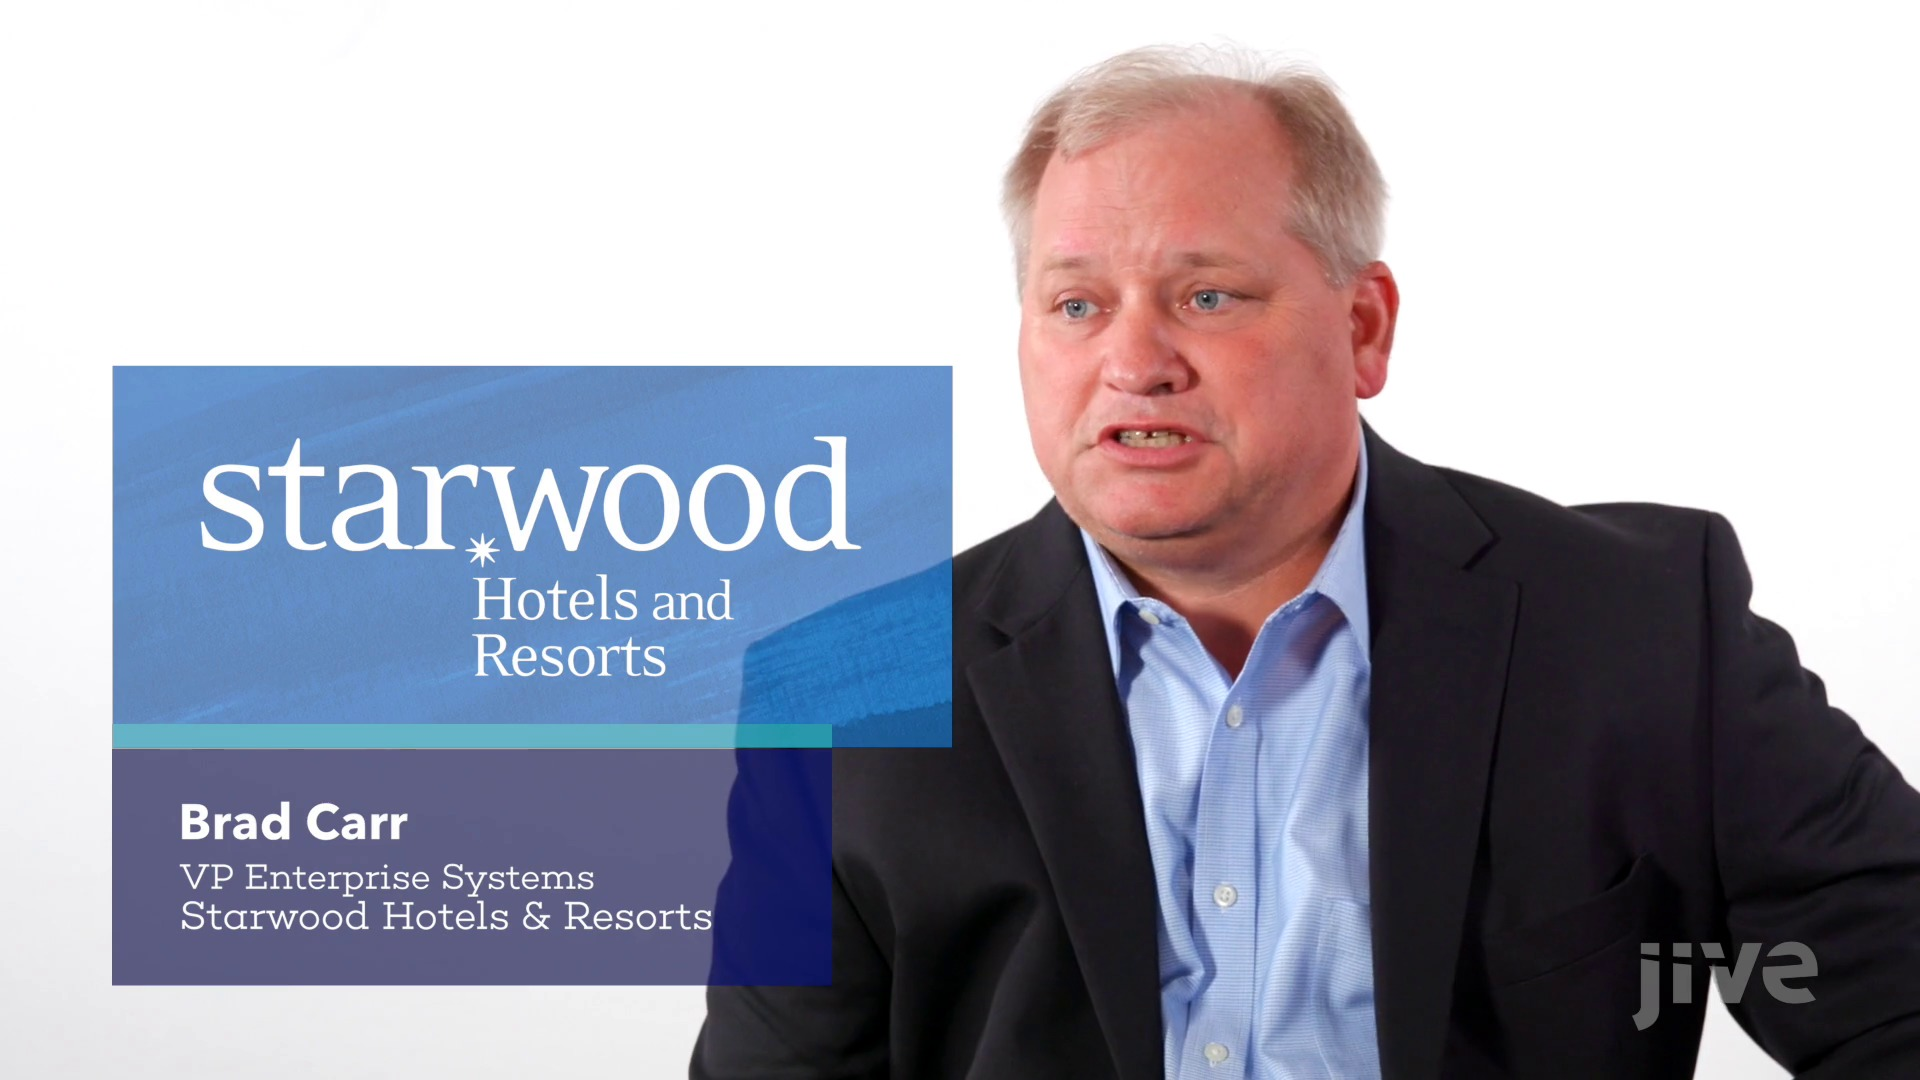 Video Jive Interactive Intranet For Starwood Hotels Explained Four Points Sheraton Biloxi Staff Take Customer Service Seriously